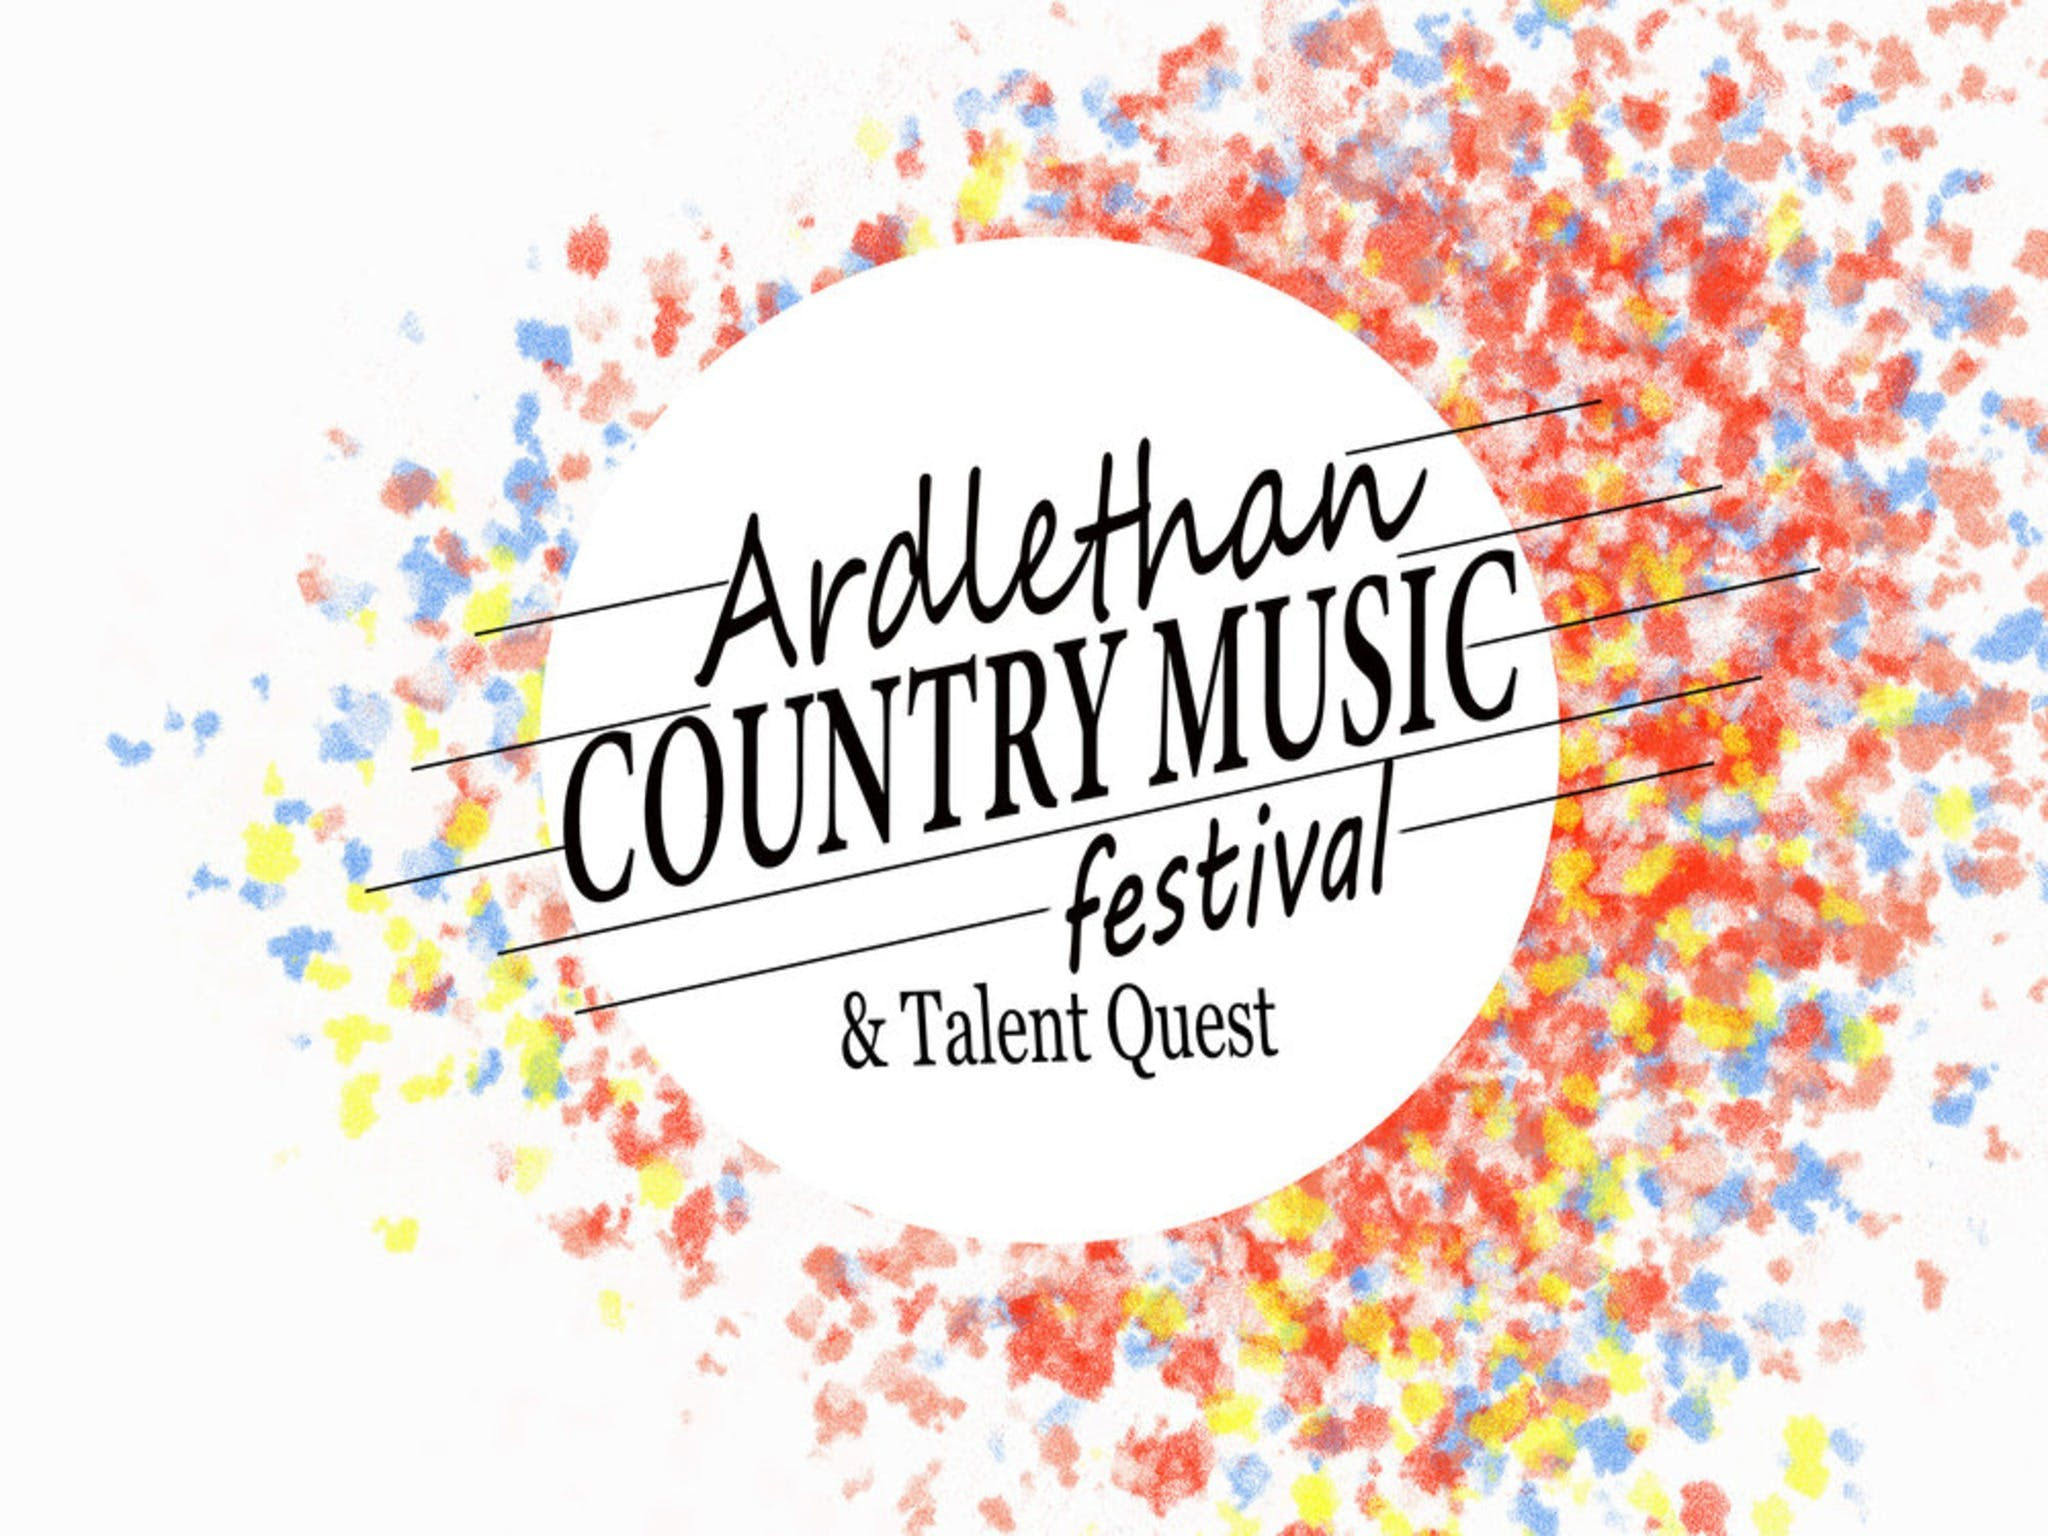 Ardlethan Country Music Festival - Pubs and Clubs